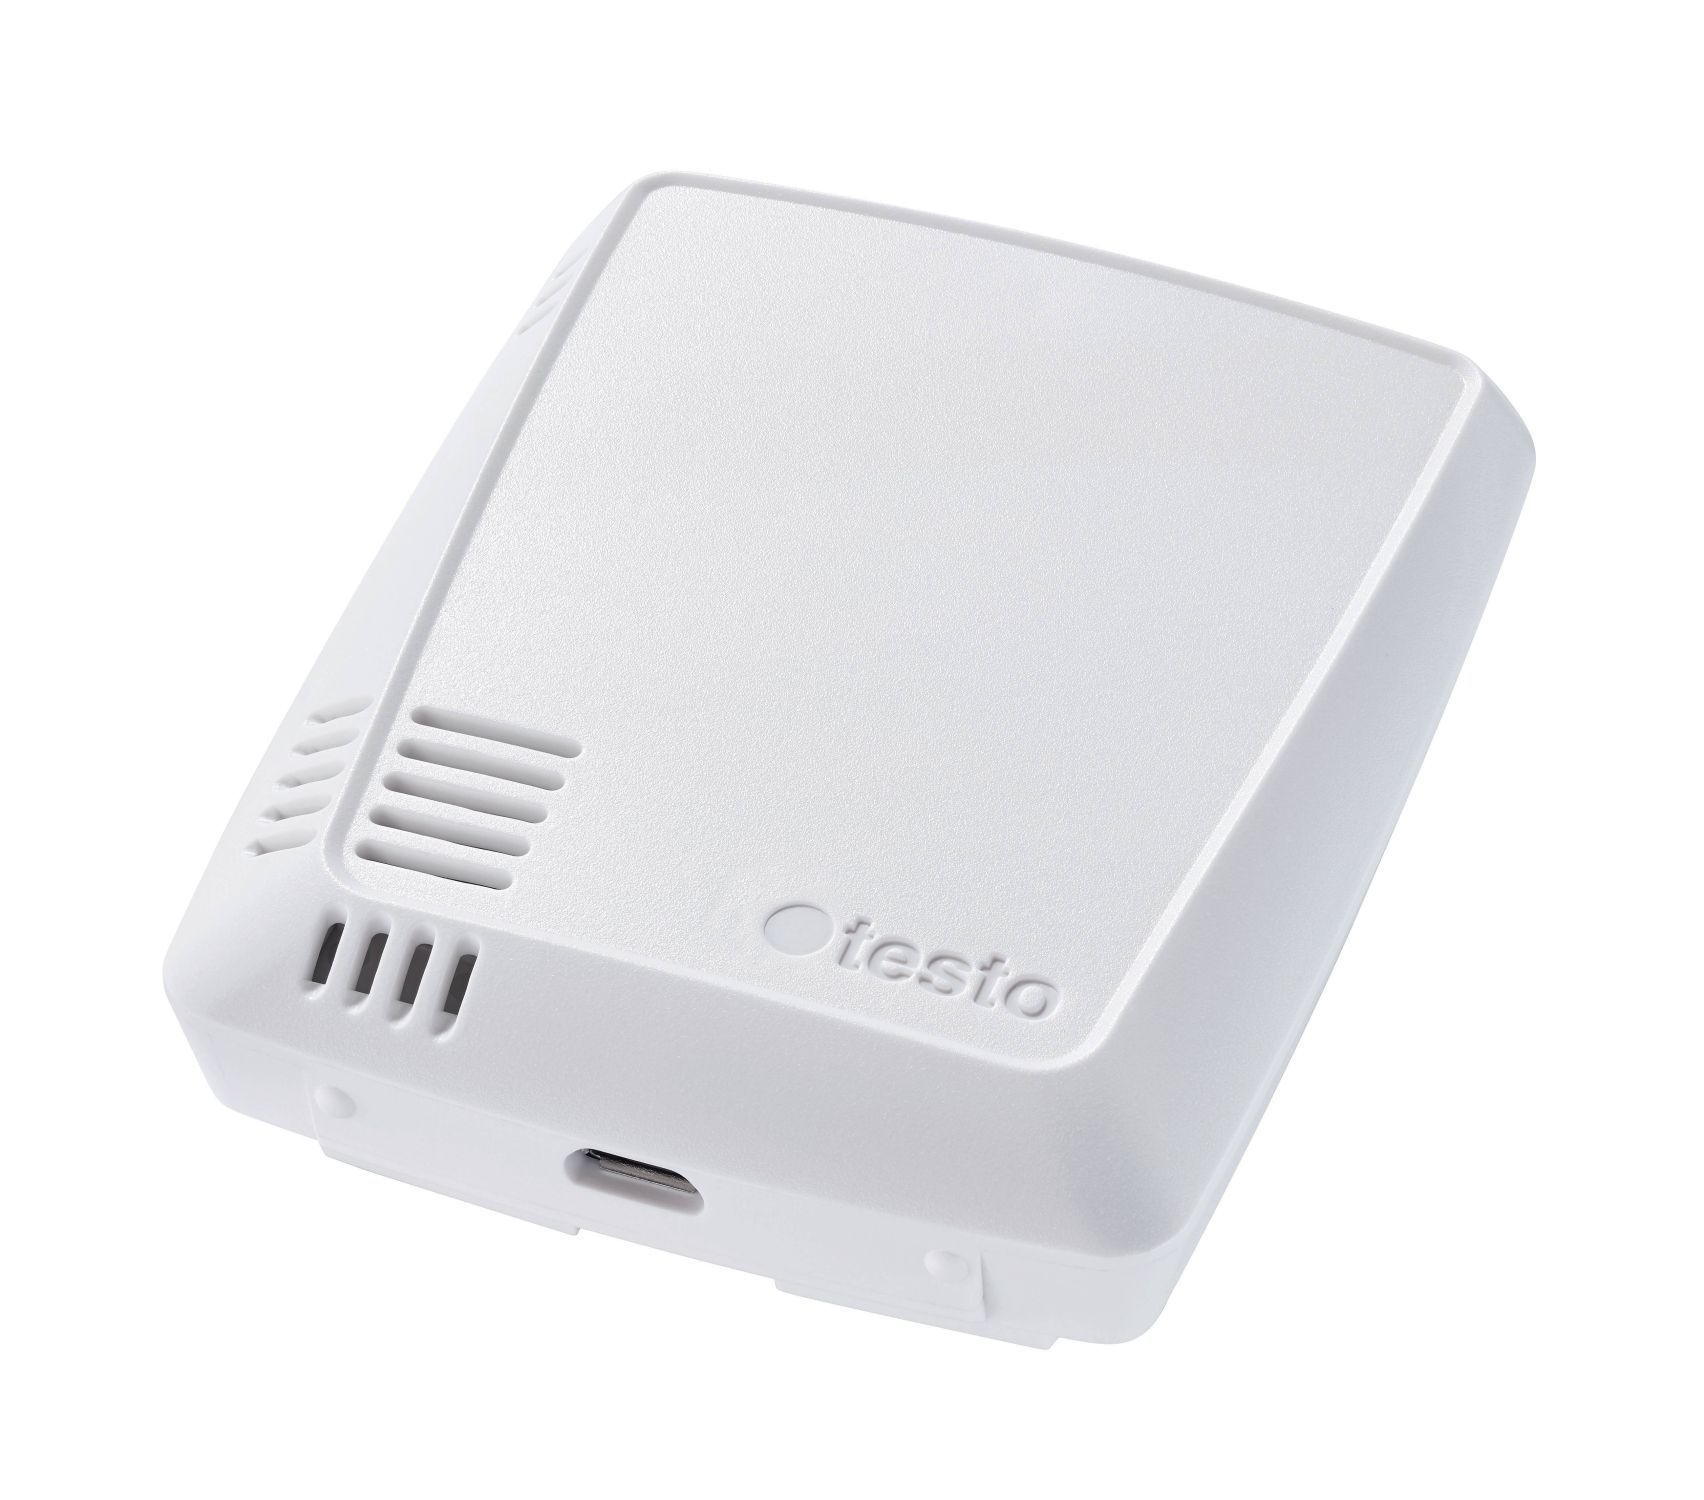 160 TH - Data logger WiFi com sensor de temperatura e umidade integrado 0572 2021